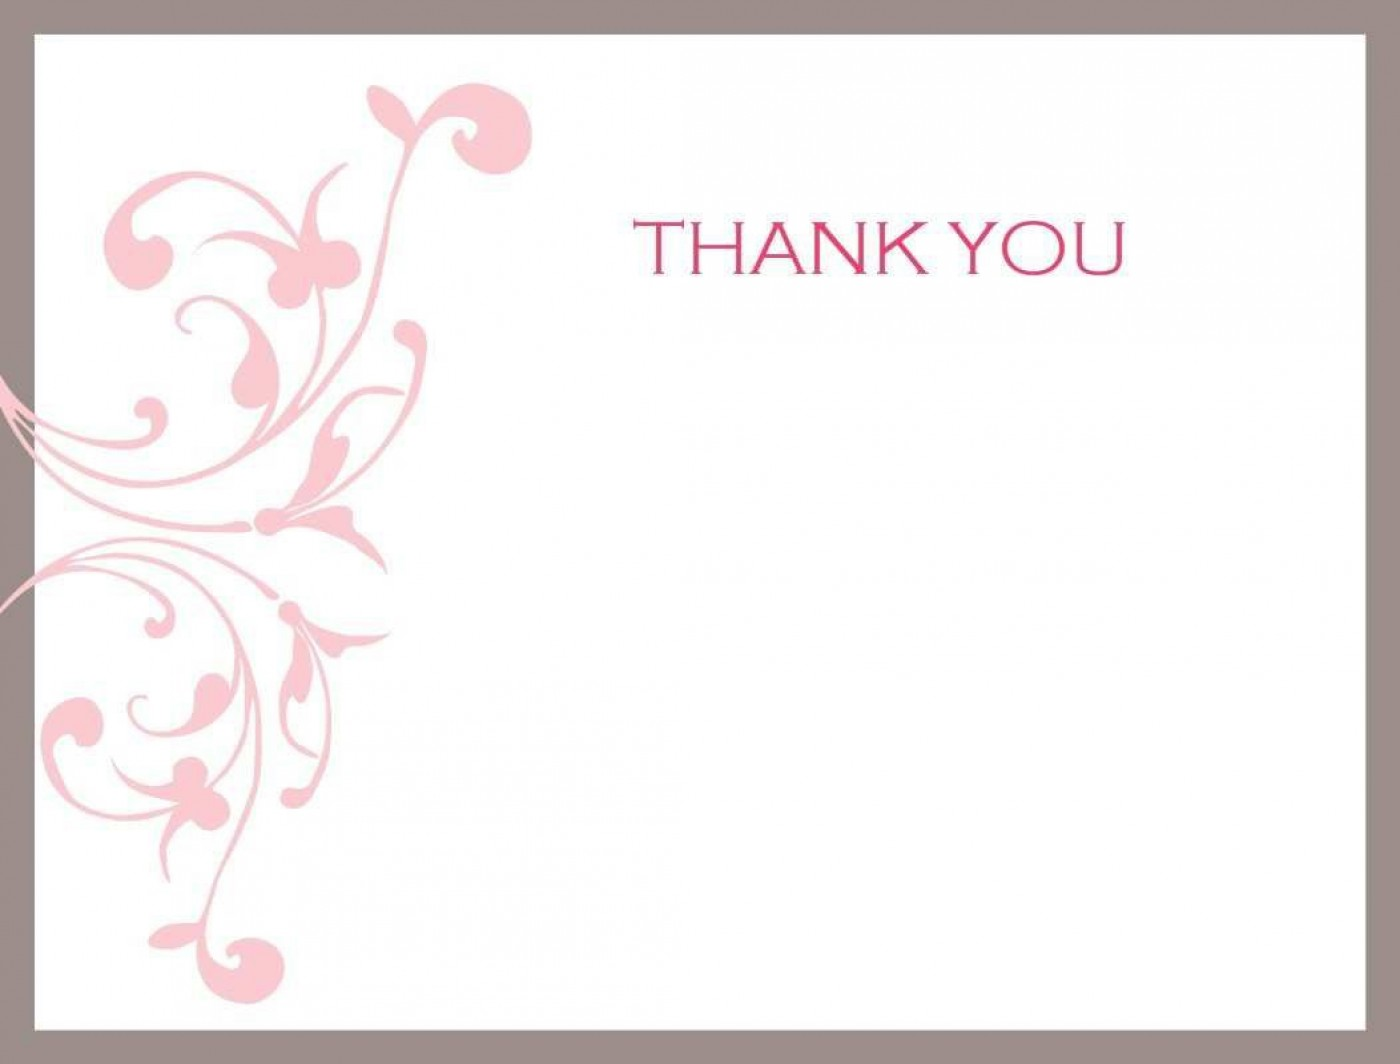 002 Impressive Thank You Card Template Photo  Wedding Busines Word Free1400